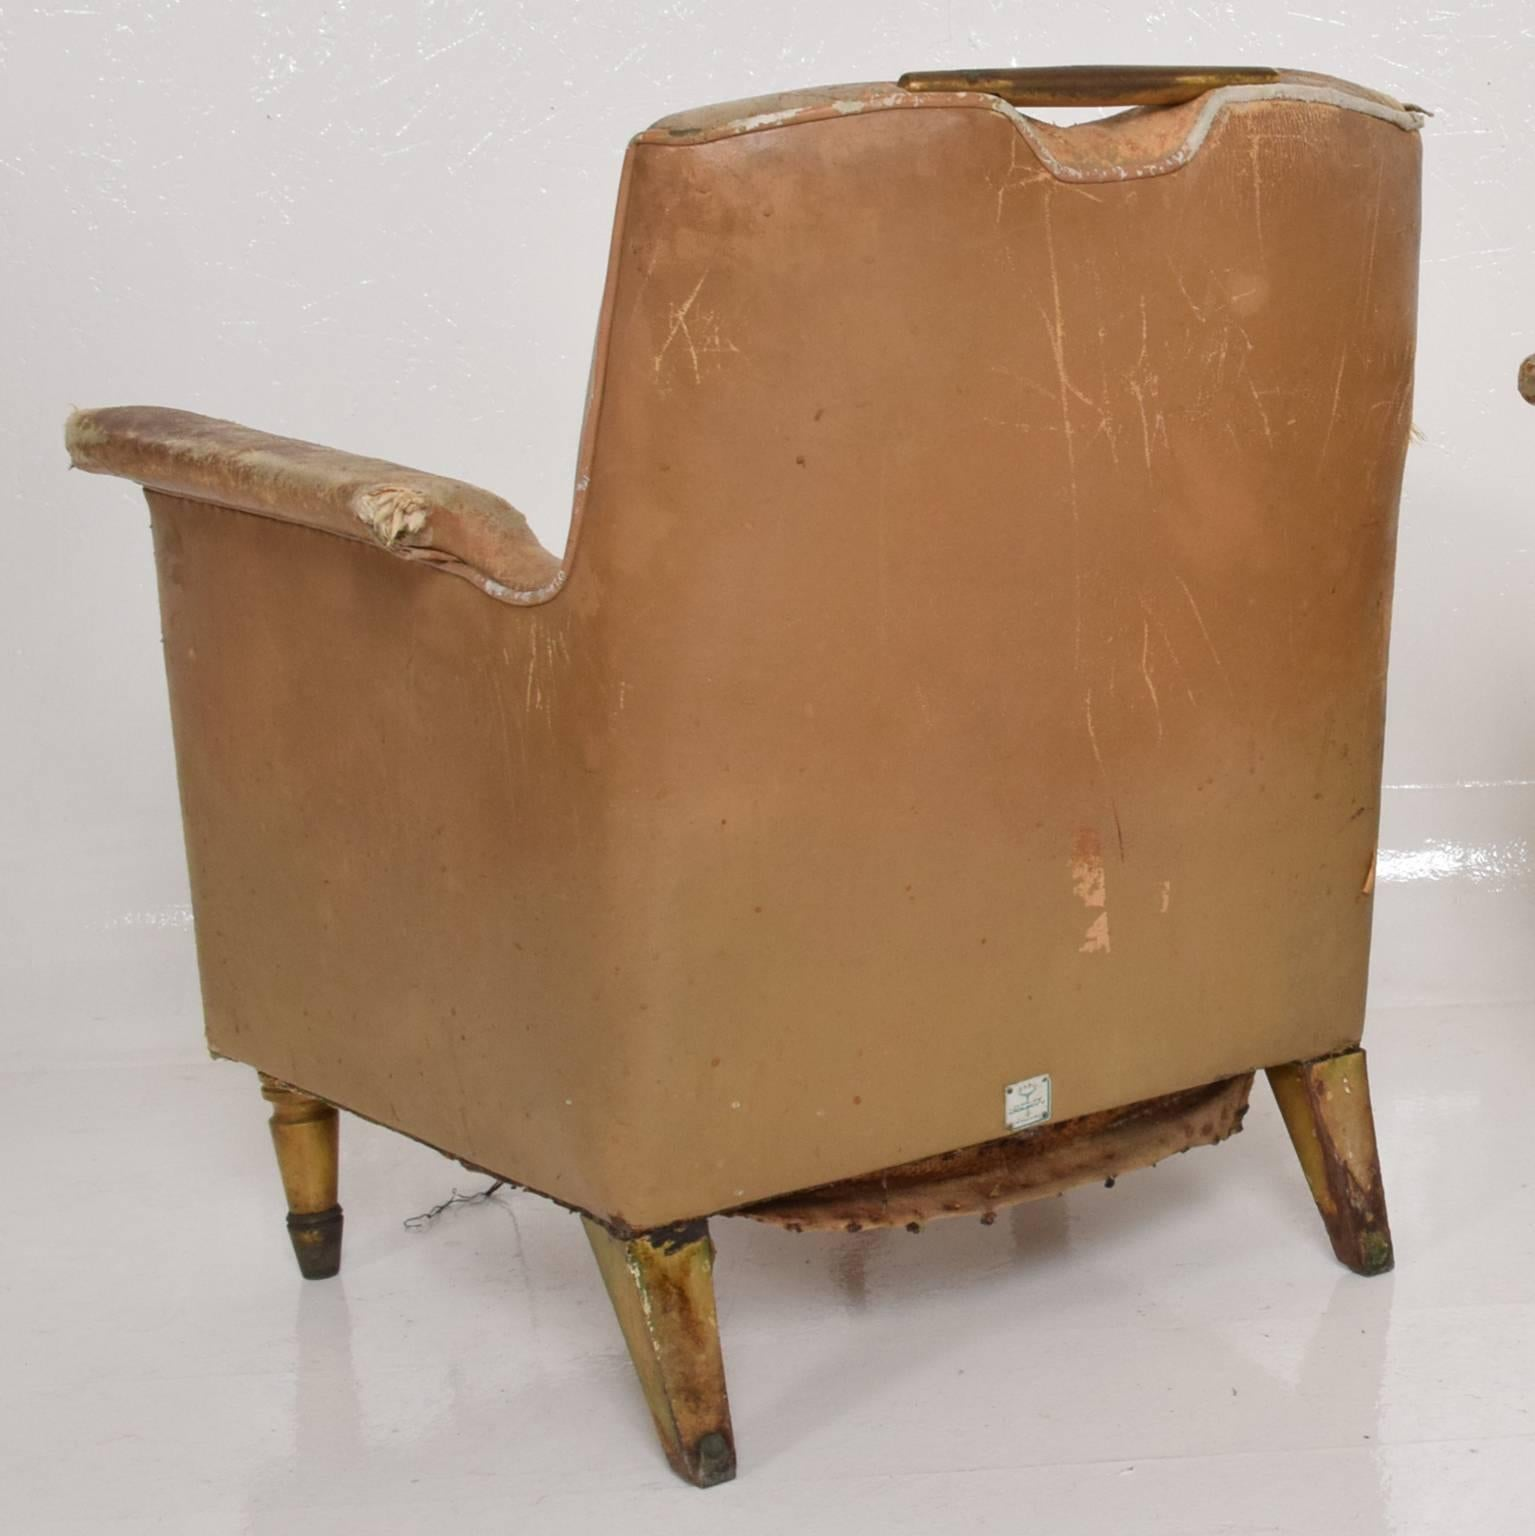 Genial Set Of Two Octavio Vidales Distressed Leather Chairs For Muebles Johrvy For  Sale 2